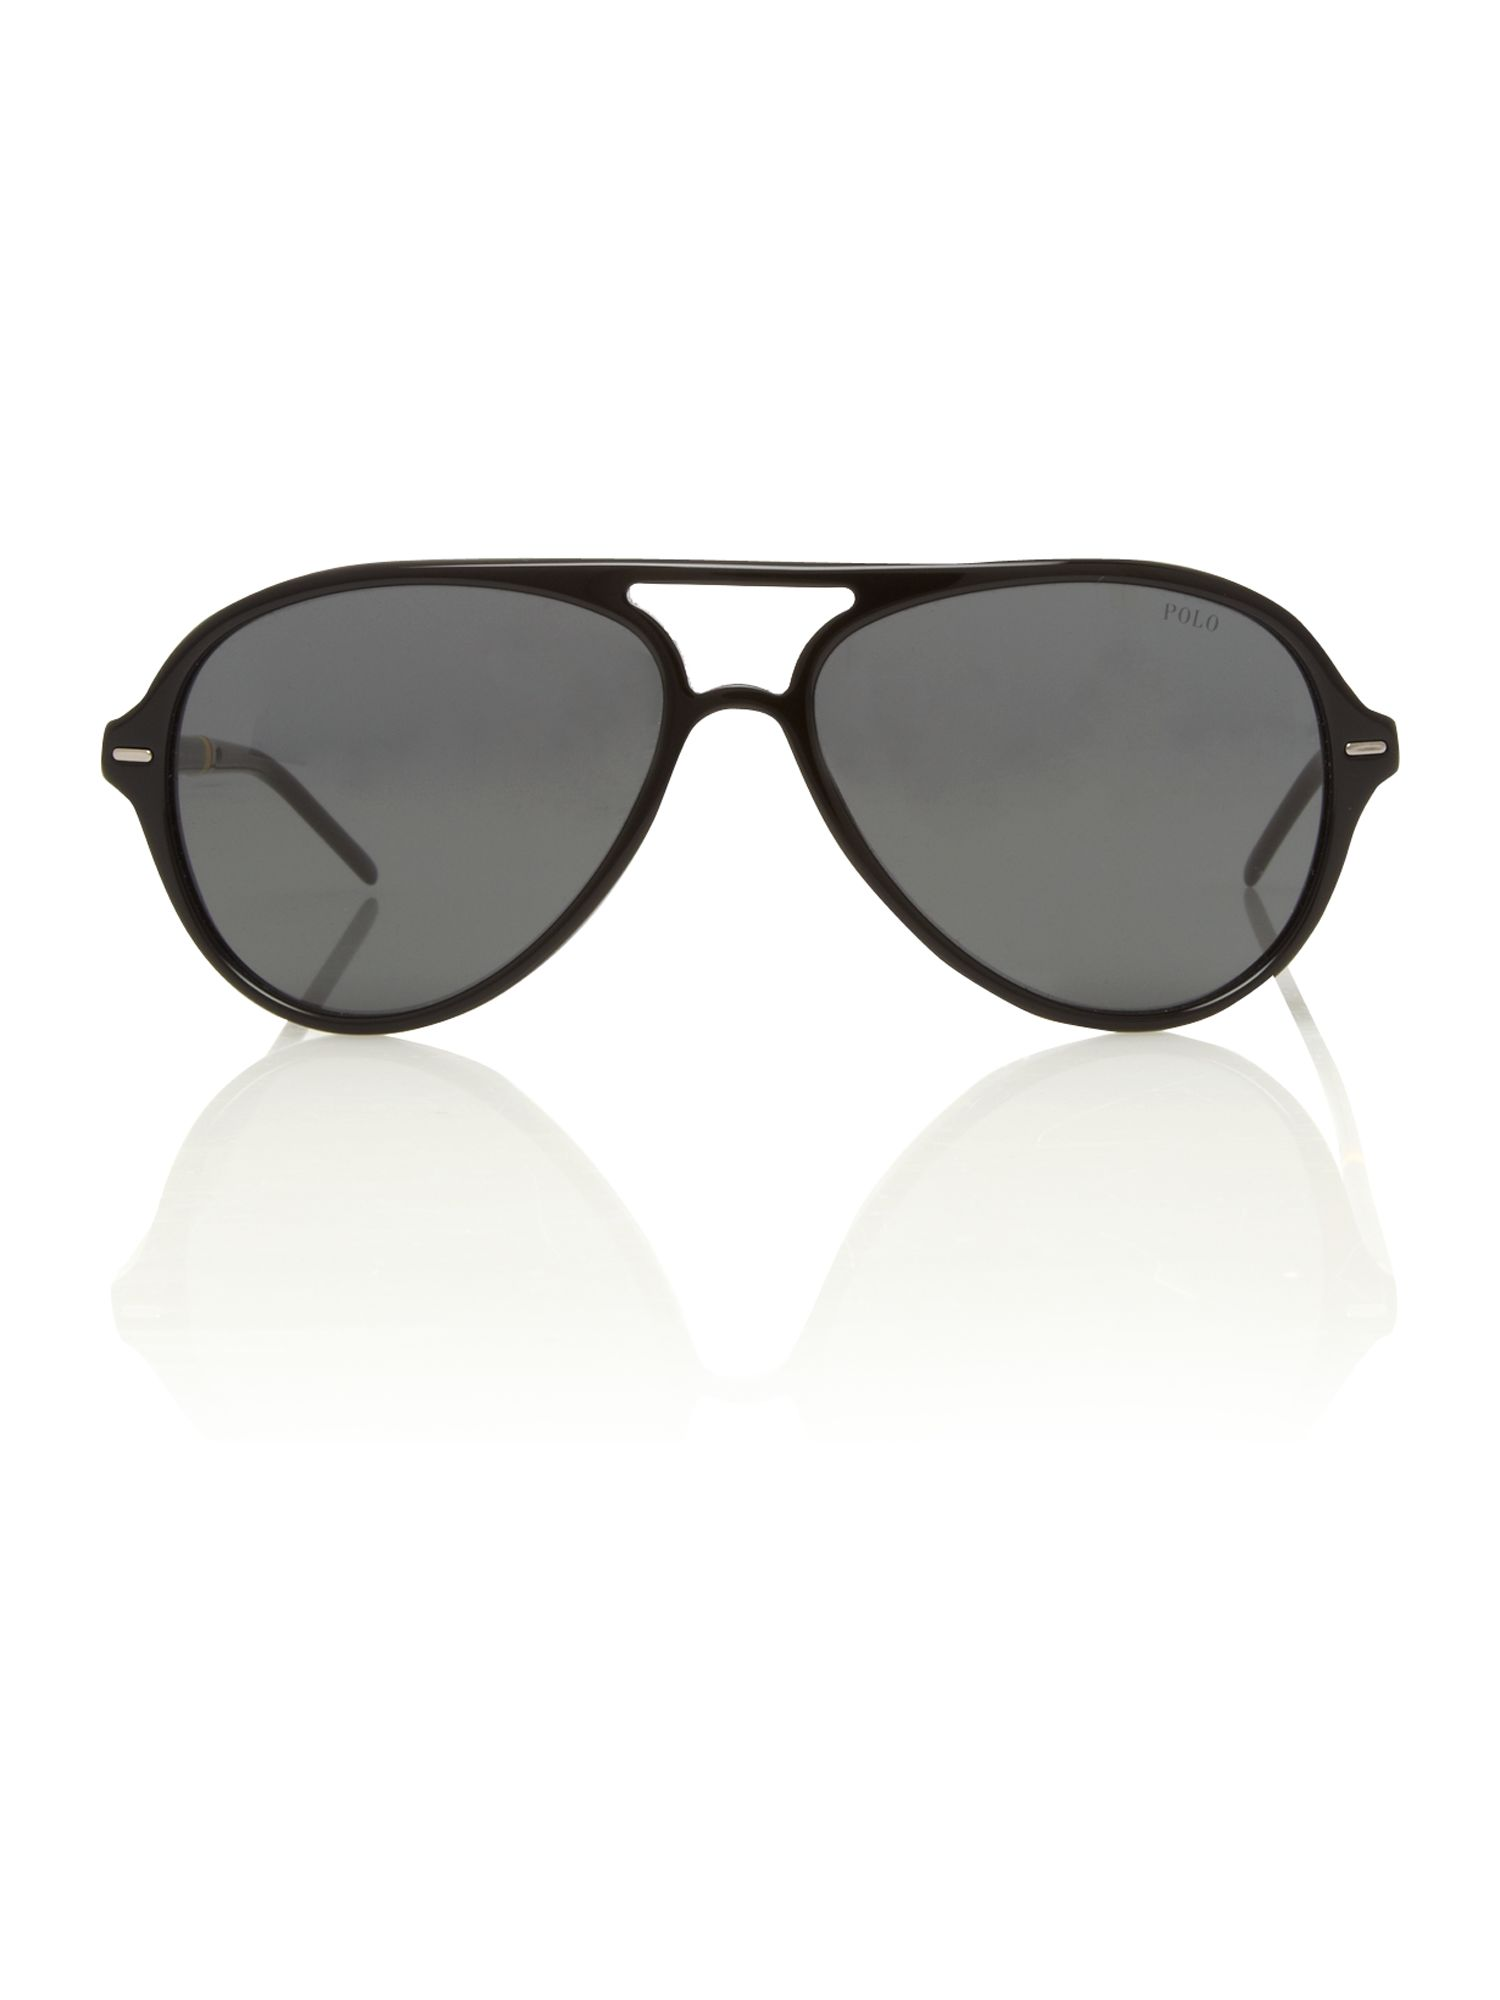 Ralph Lauren Sunglasses Mens  polo ralph lauren mens sunglasses in black for men lyst